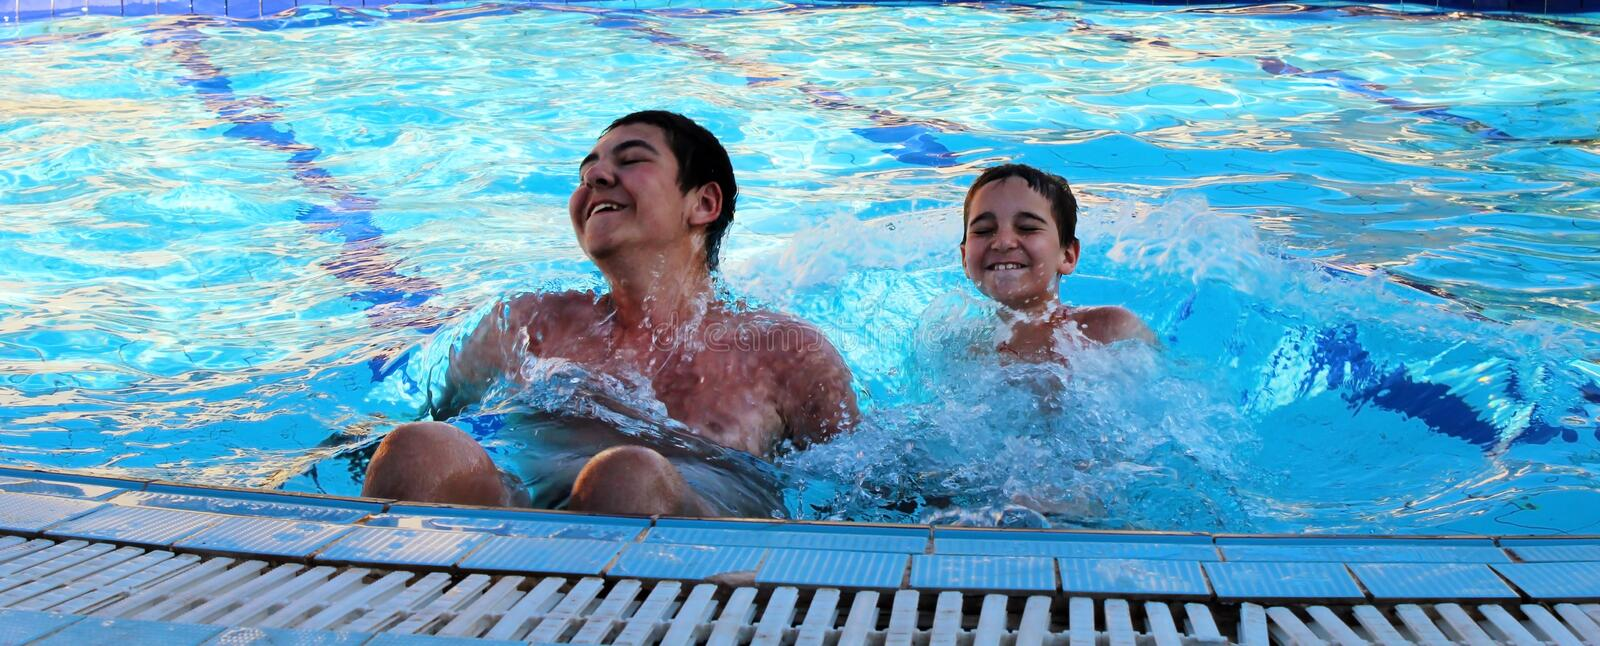 Brothers  have fun in the pool. Brothers play and have fun in the pool royalty free stock photo